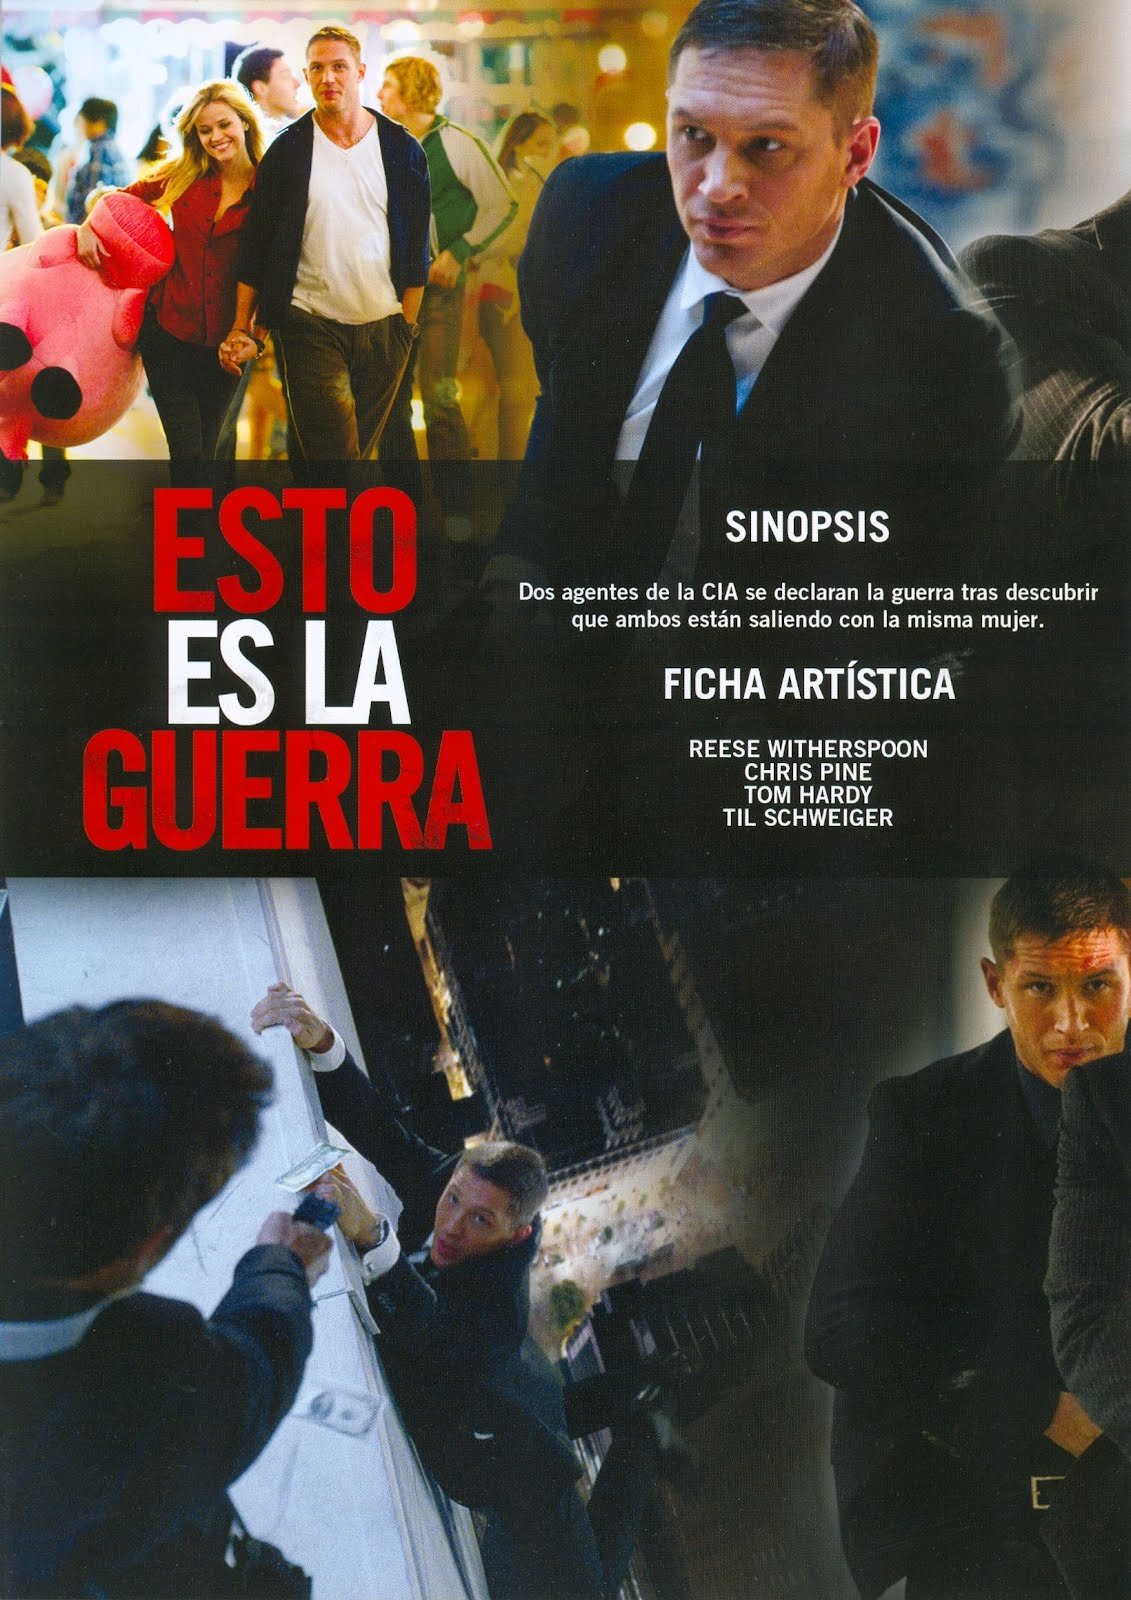 Esto es la guerra (This Means War) (2012)